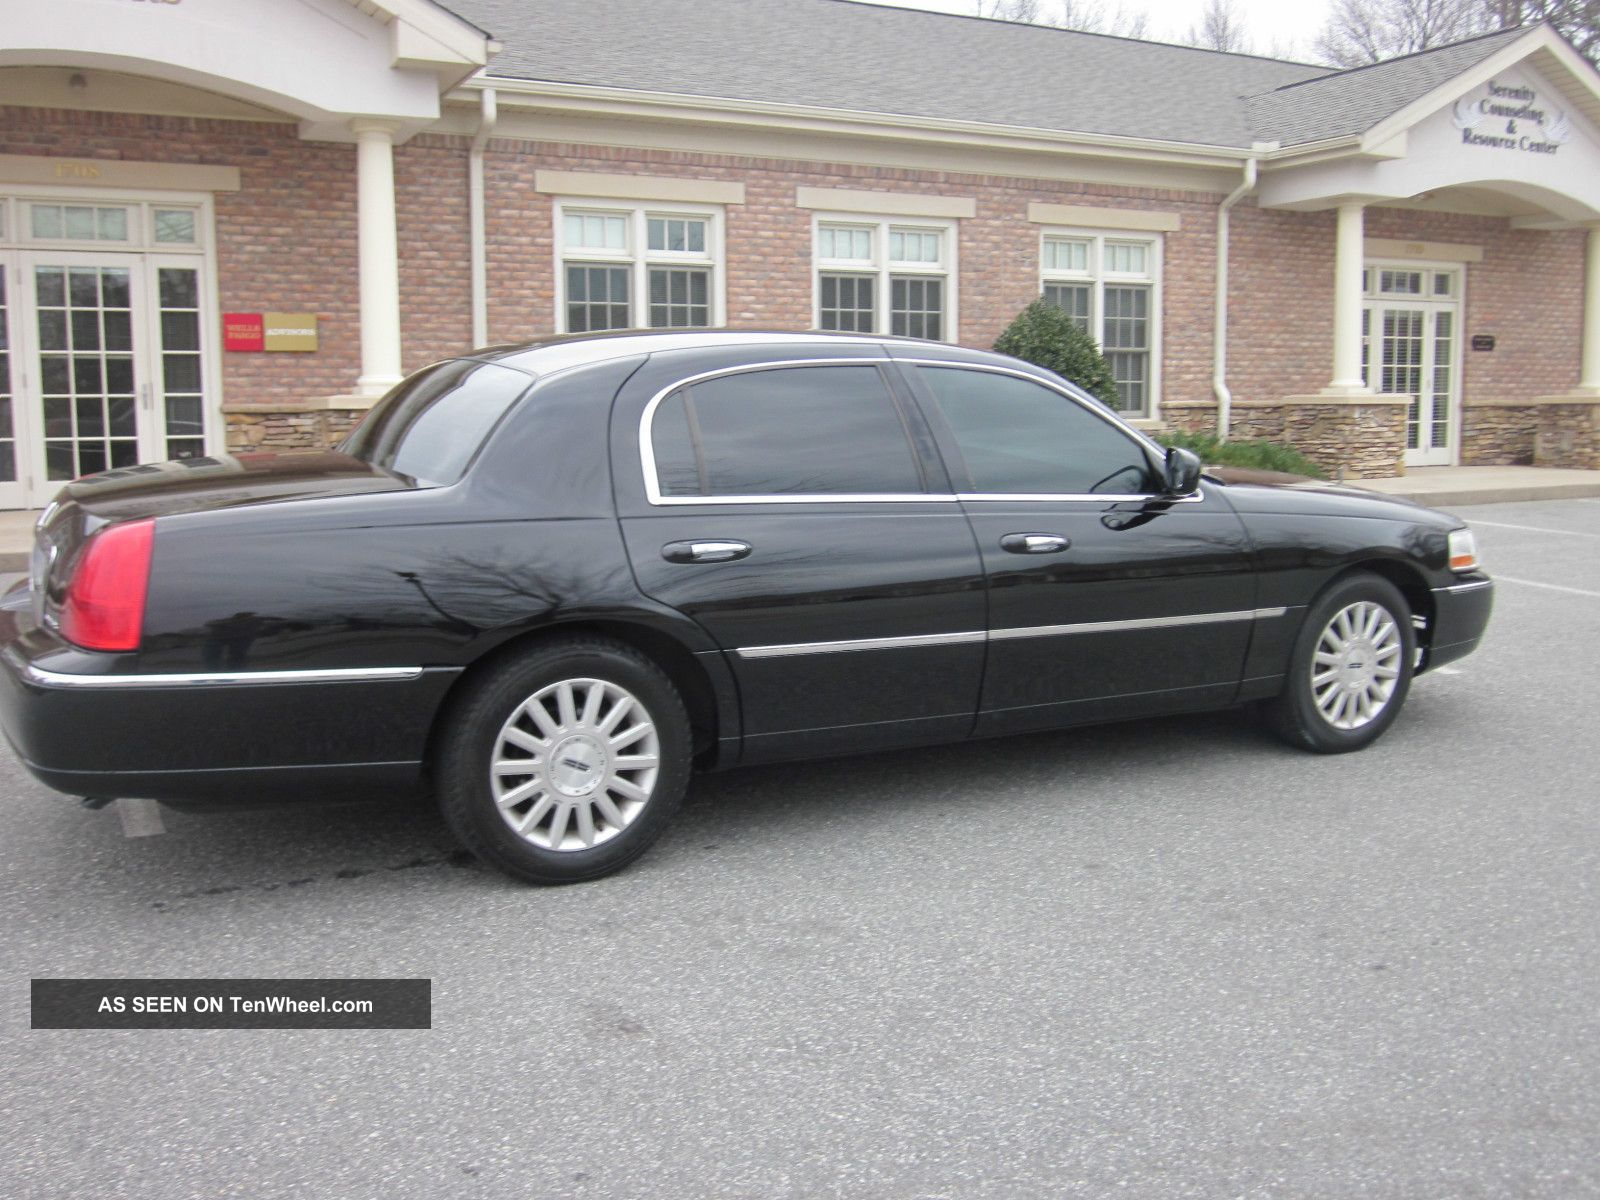 2004 Lincoln Town Car Executive Sedan Triple Black Look Paint Town Car photo